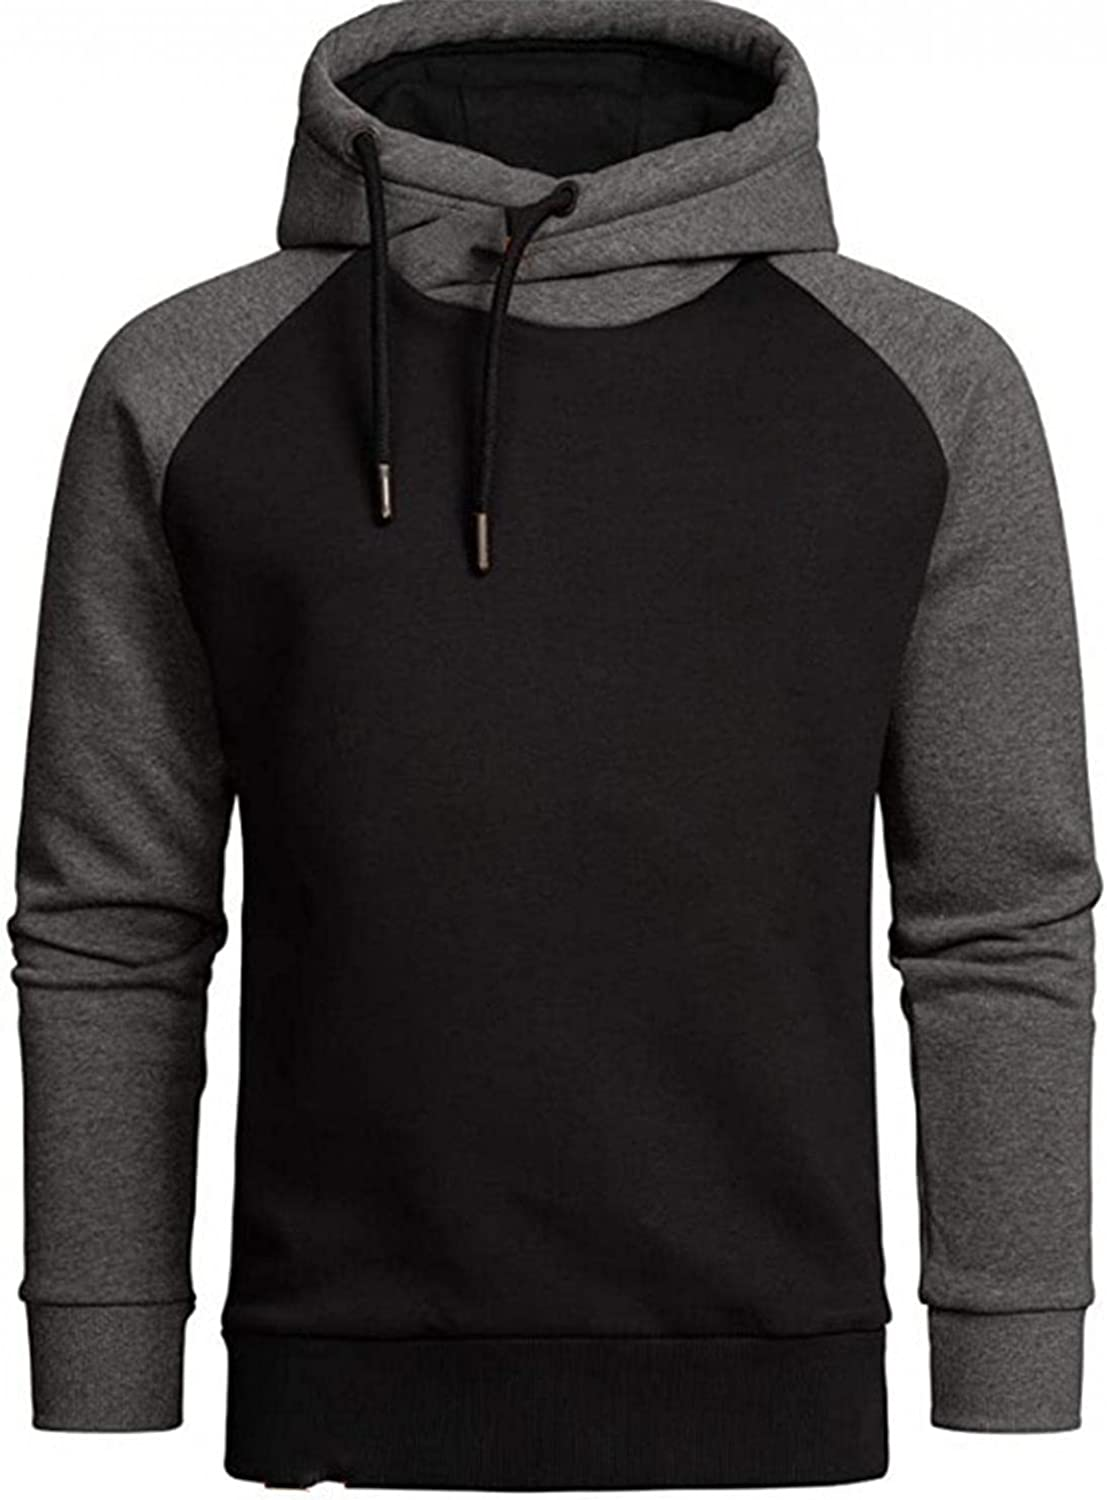 Hoodies for Men Men's Solid Color Casual Cotton Long Sleeve Fashion Sports Pullover Top Mature Fashion Hoodies Sweatshirts